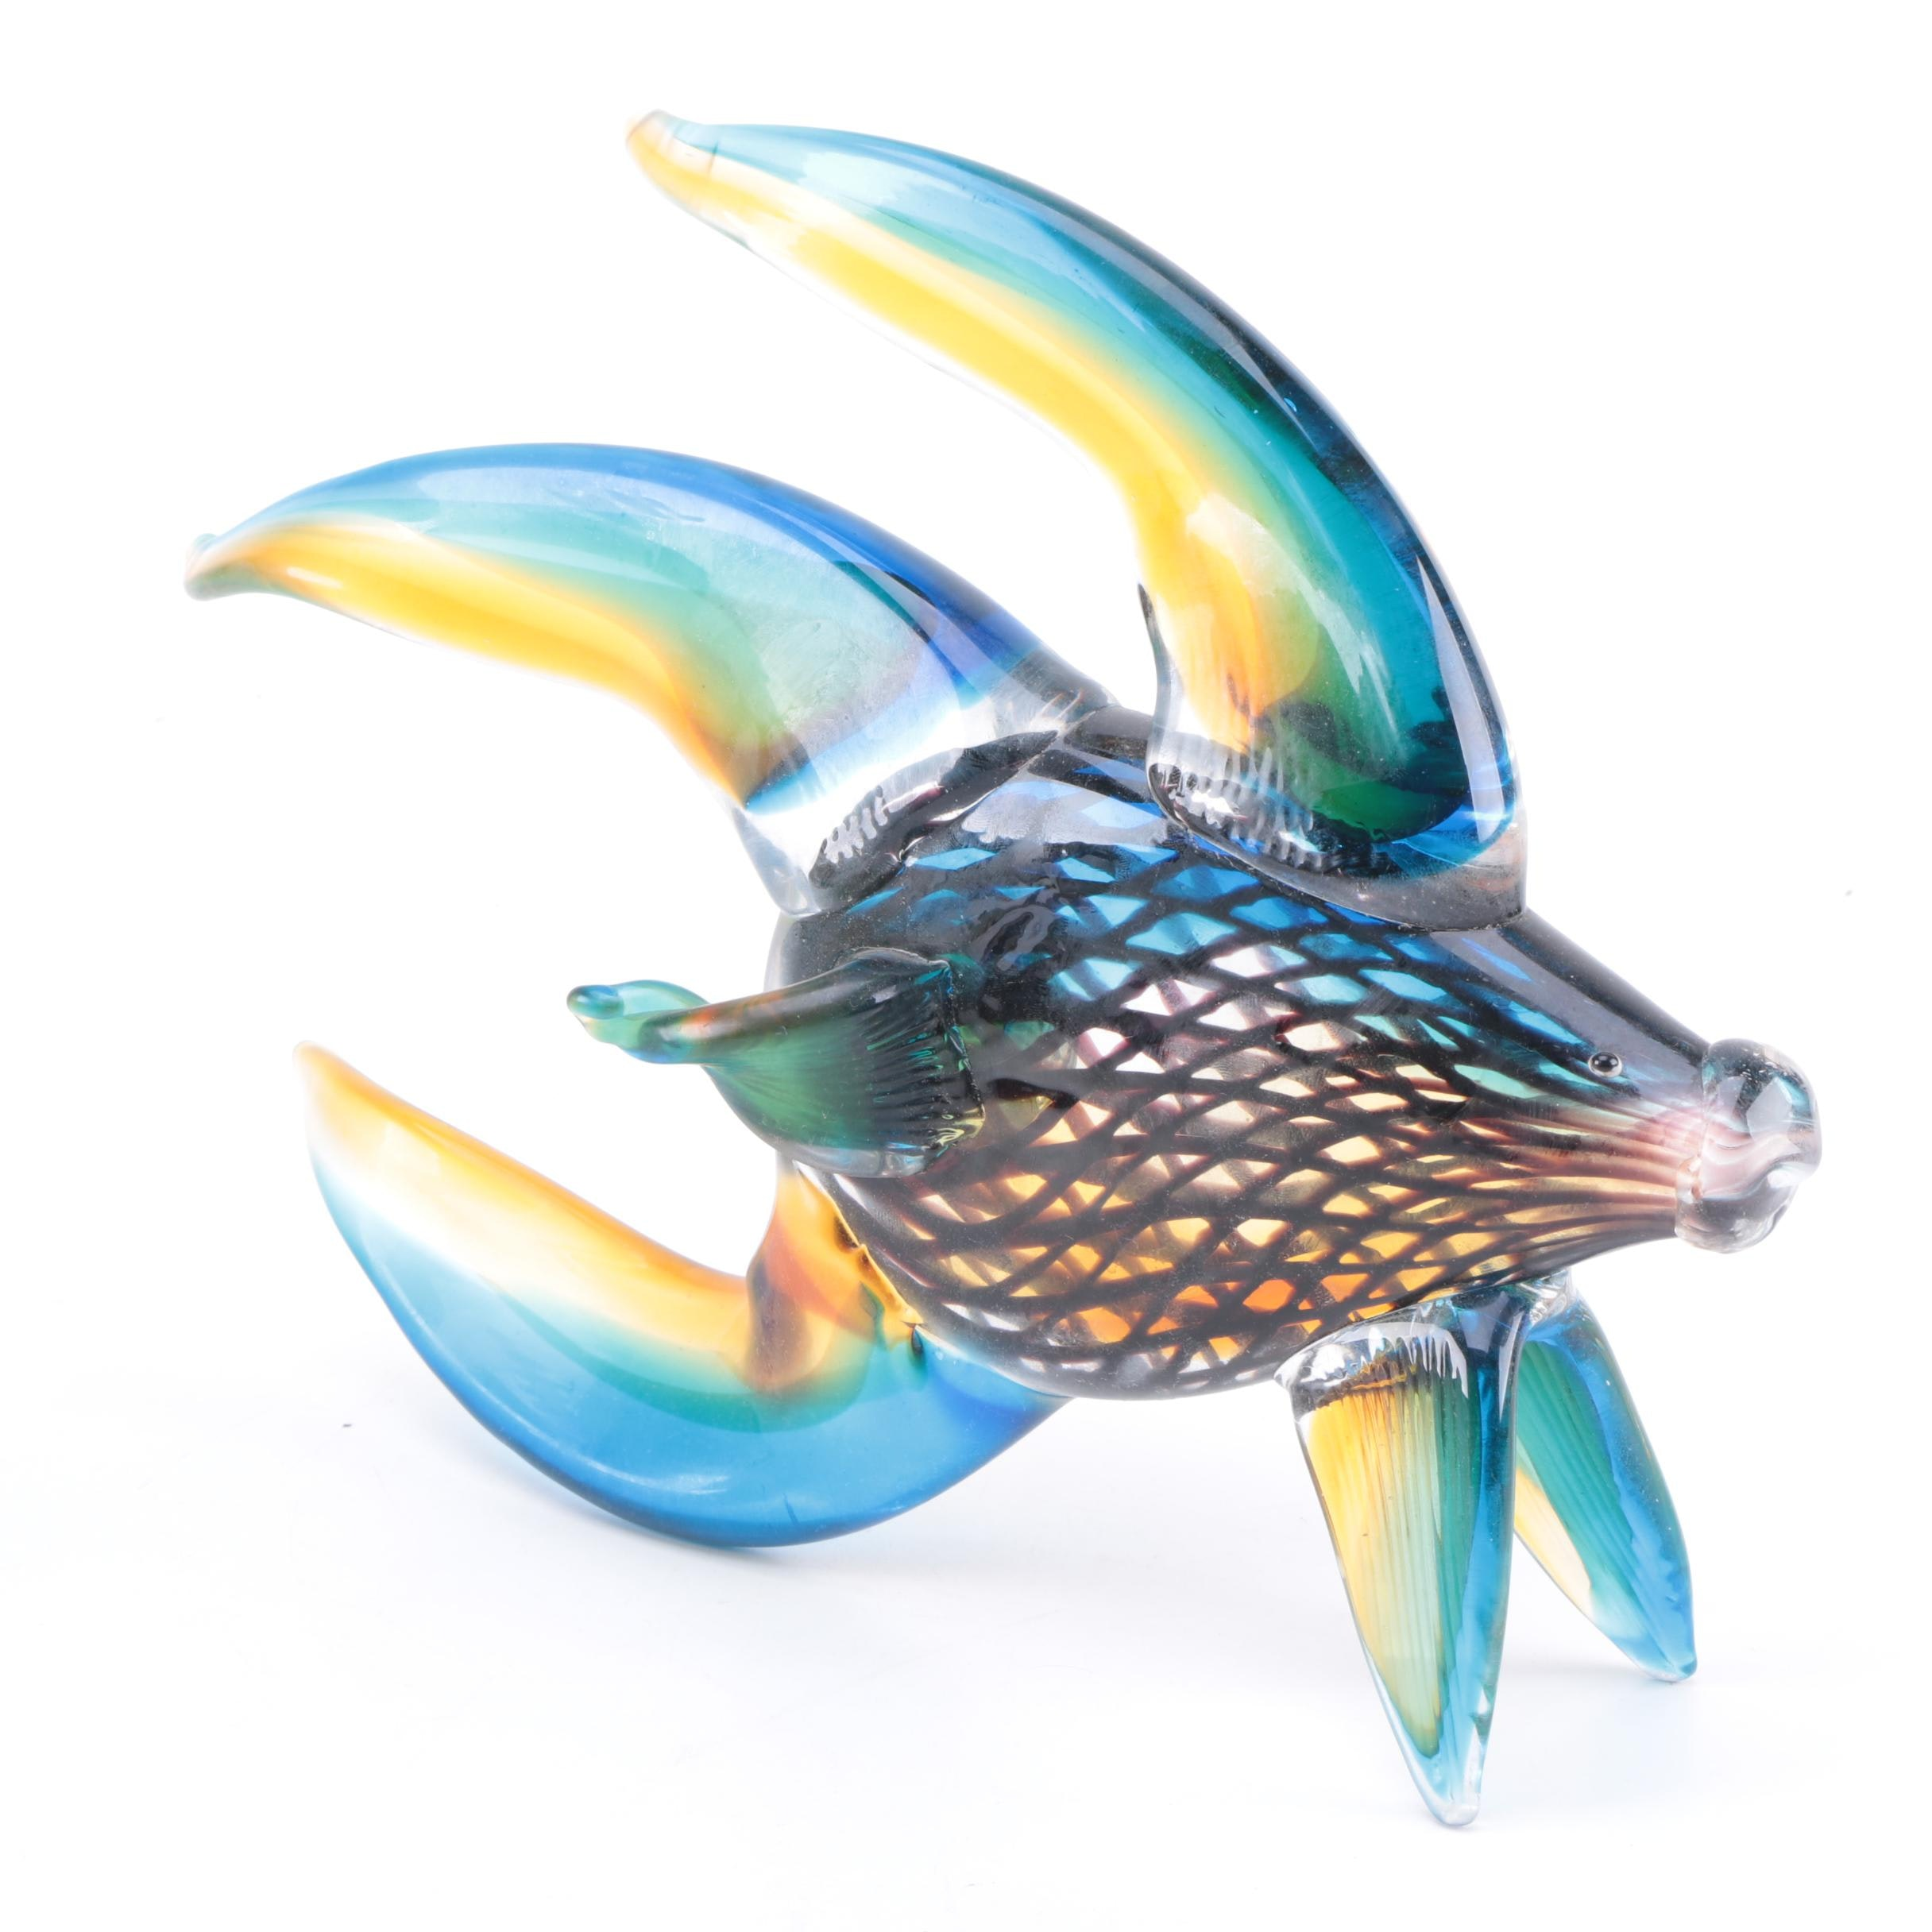 Art-Glass Fish with Long Flowing Blue and Yellow Fins